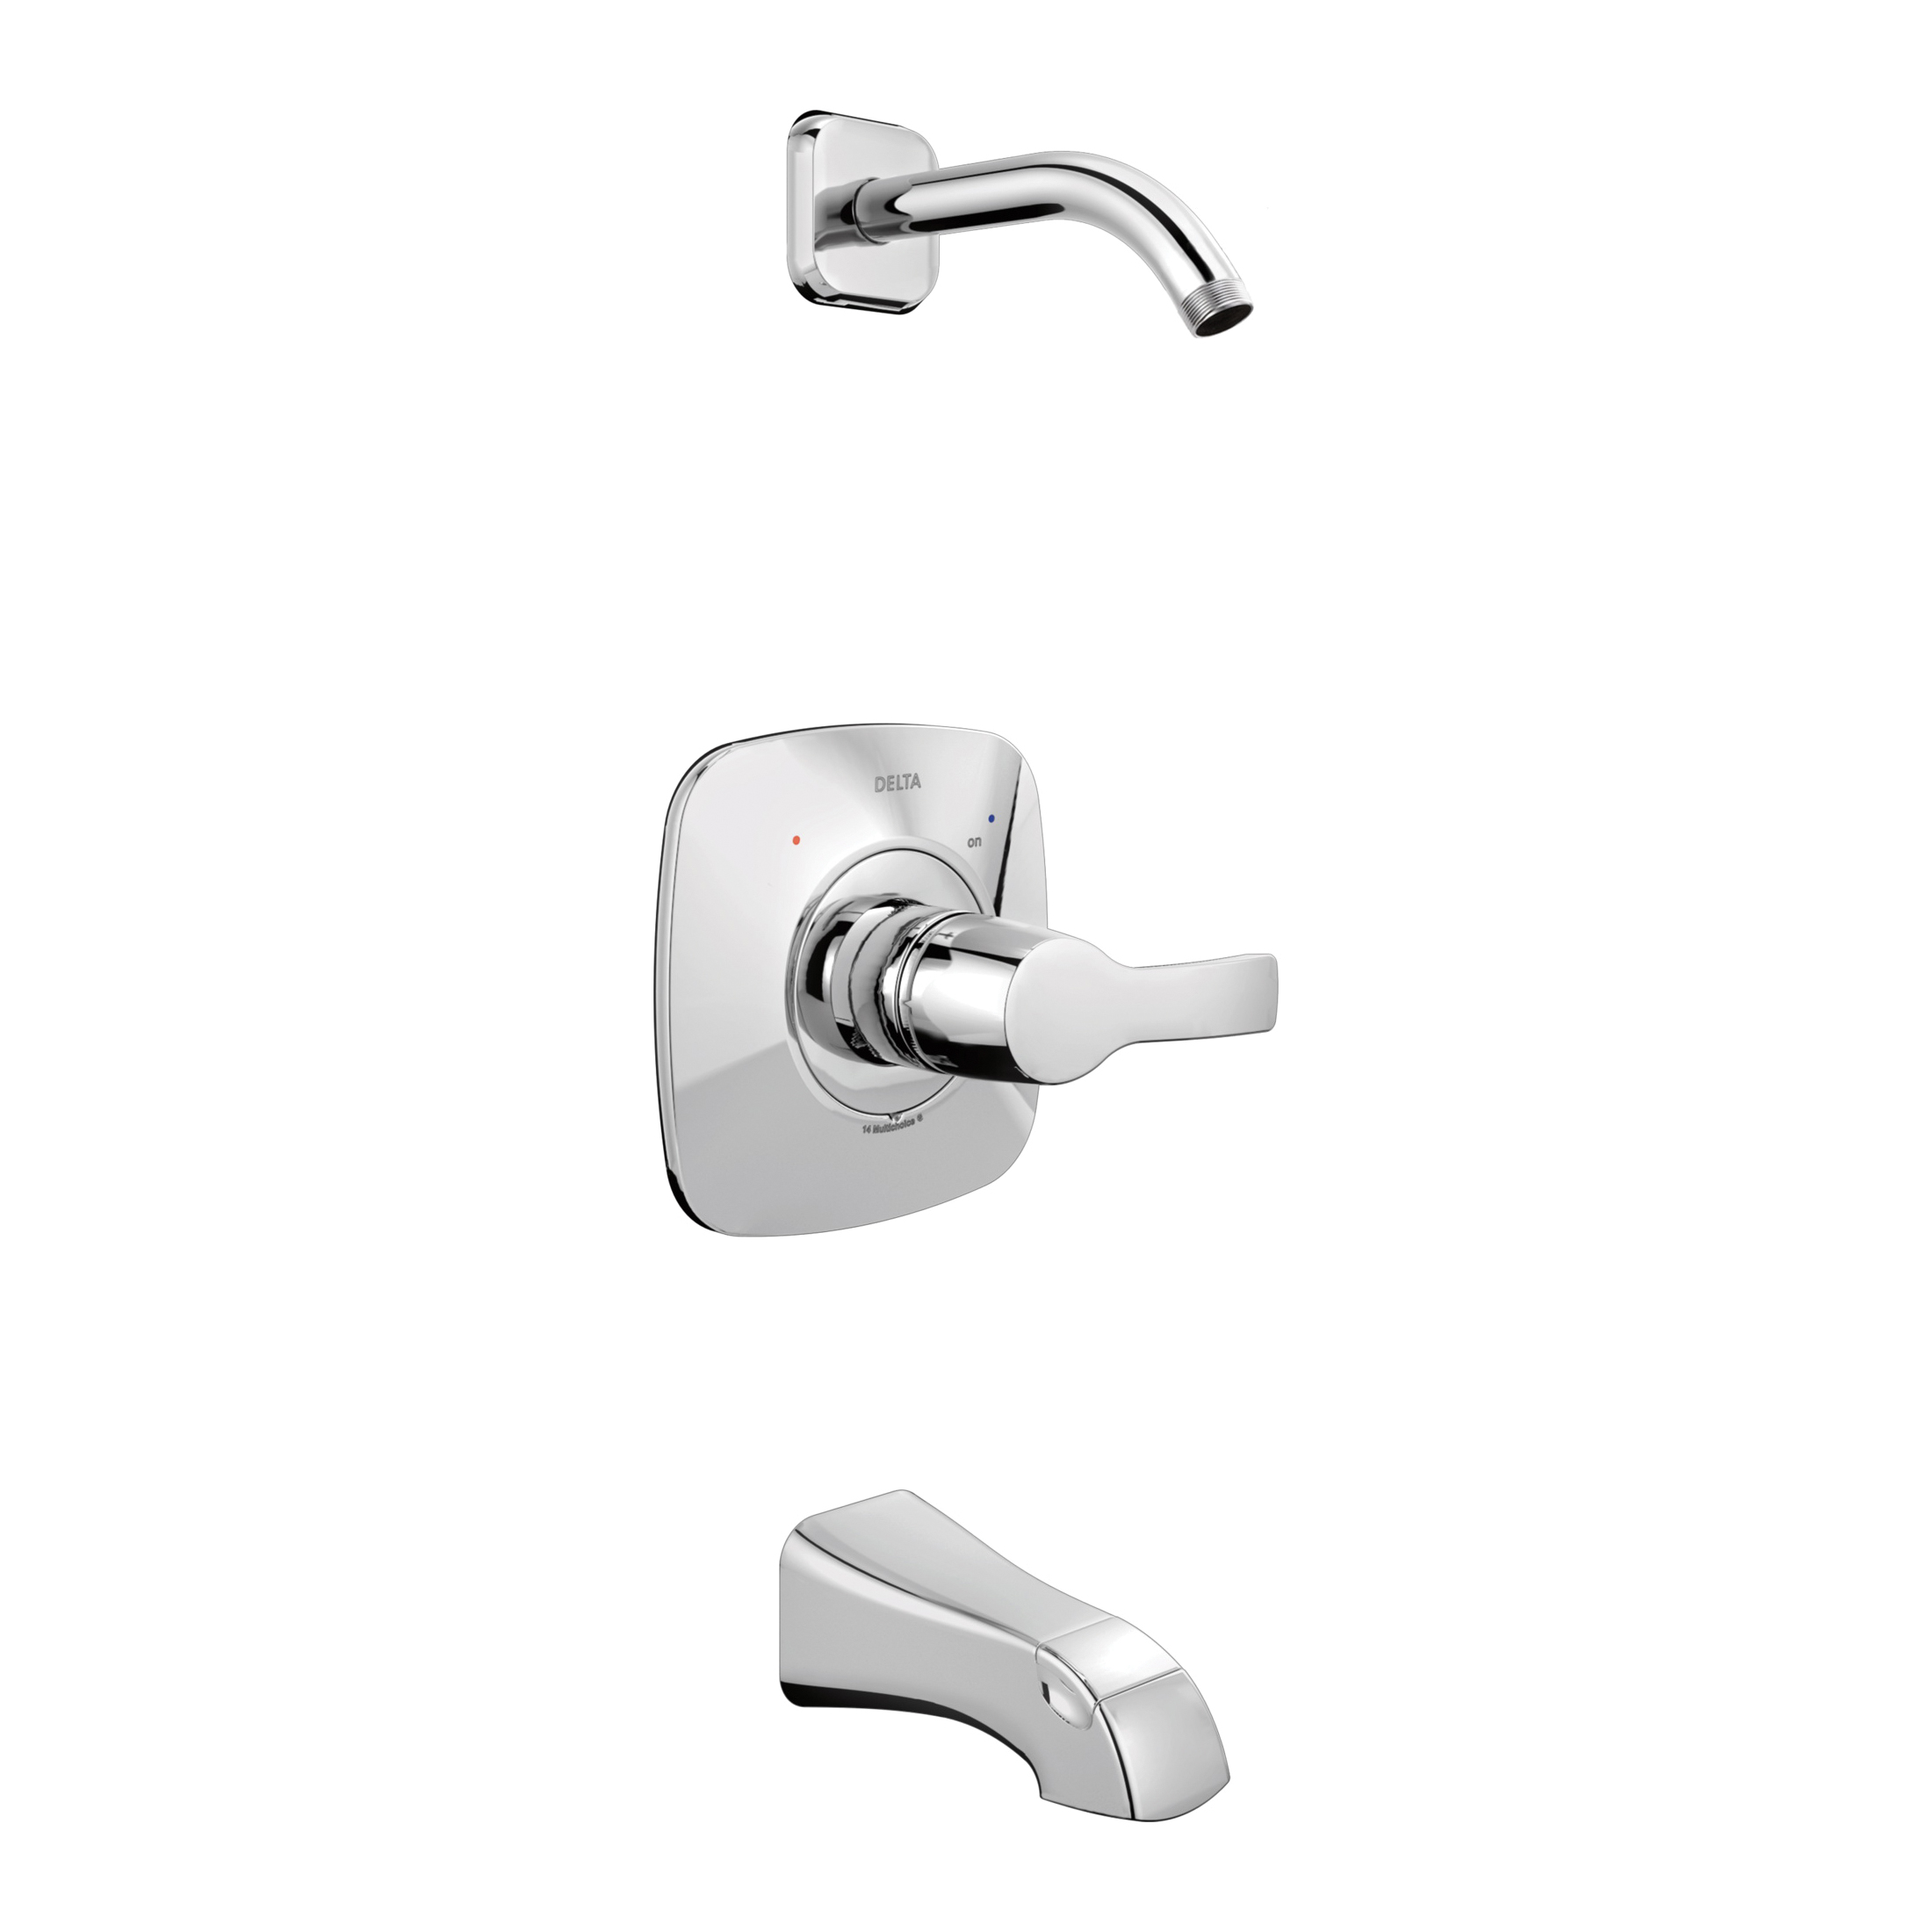 DELTA® T14452-LHD Monitor® 14 Tub and Shower Trim, Hand Shower Yes/No: No, Chrome Plated